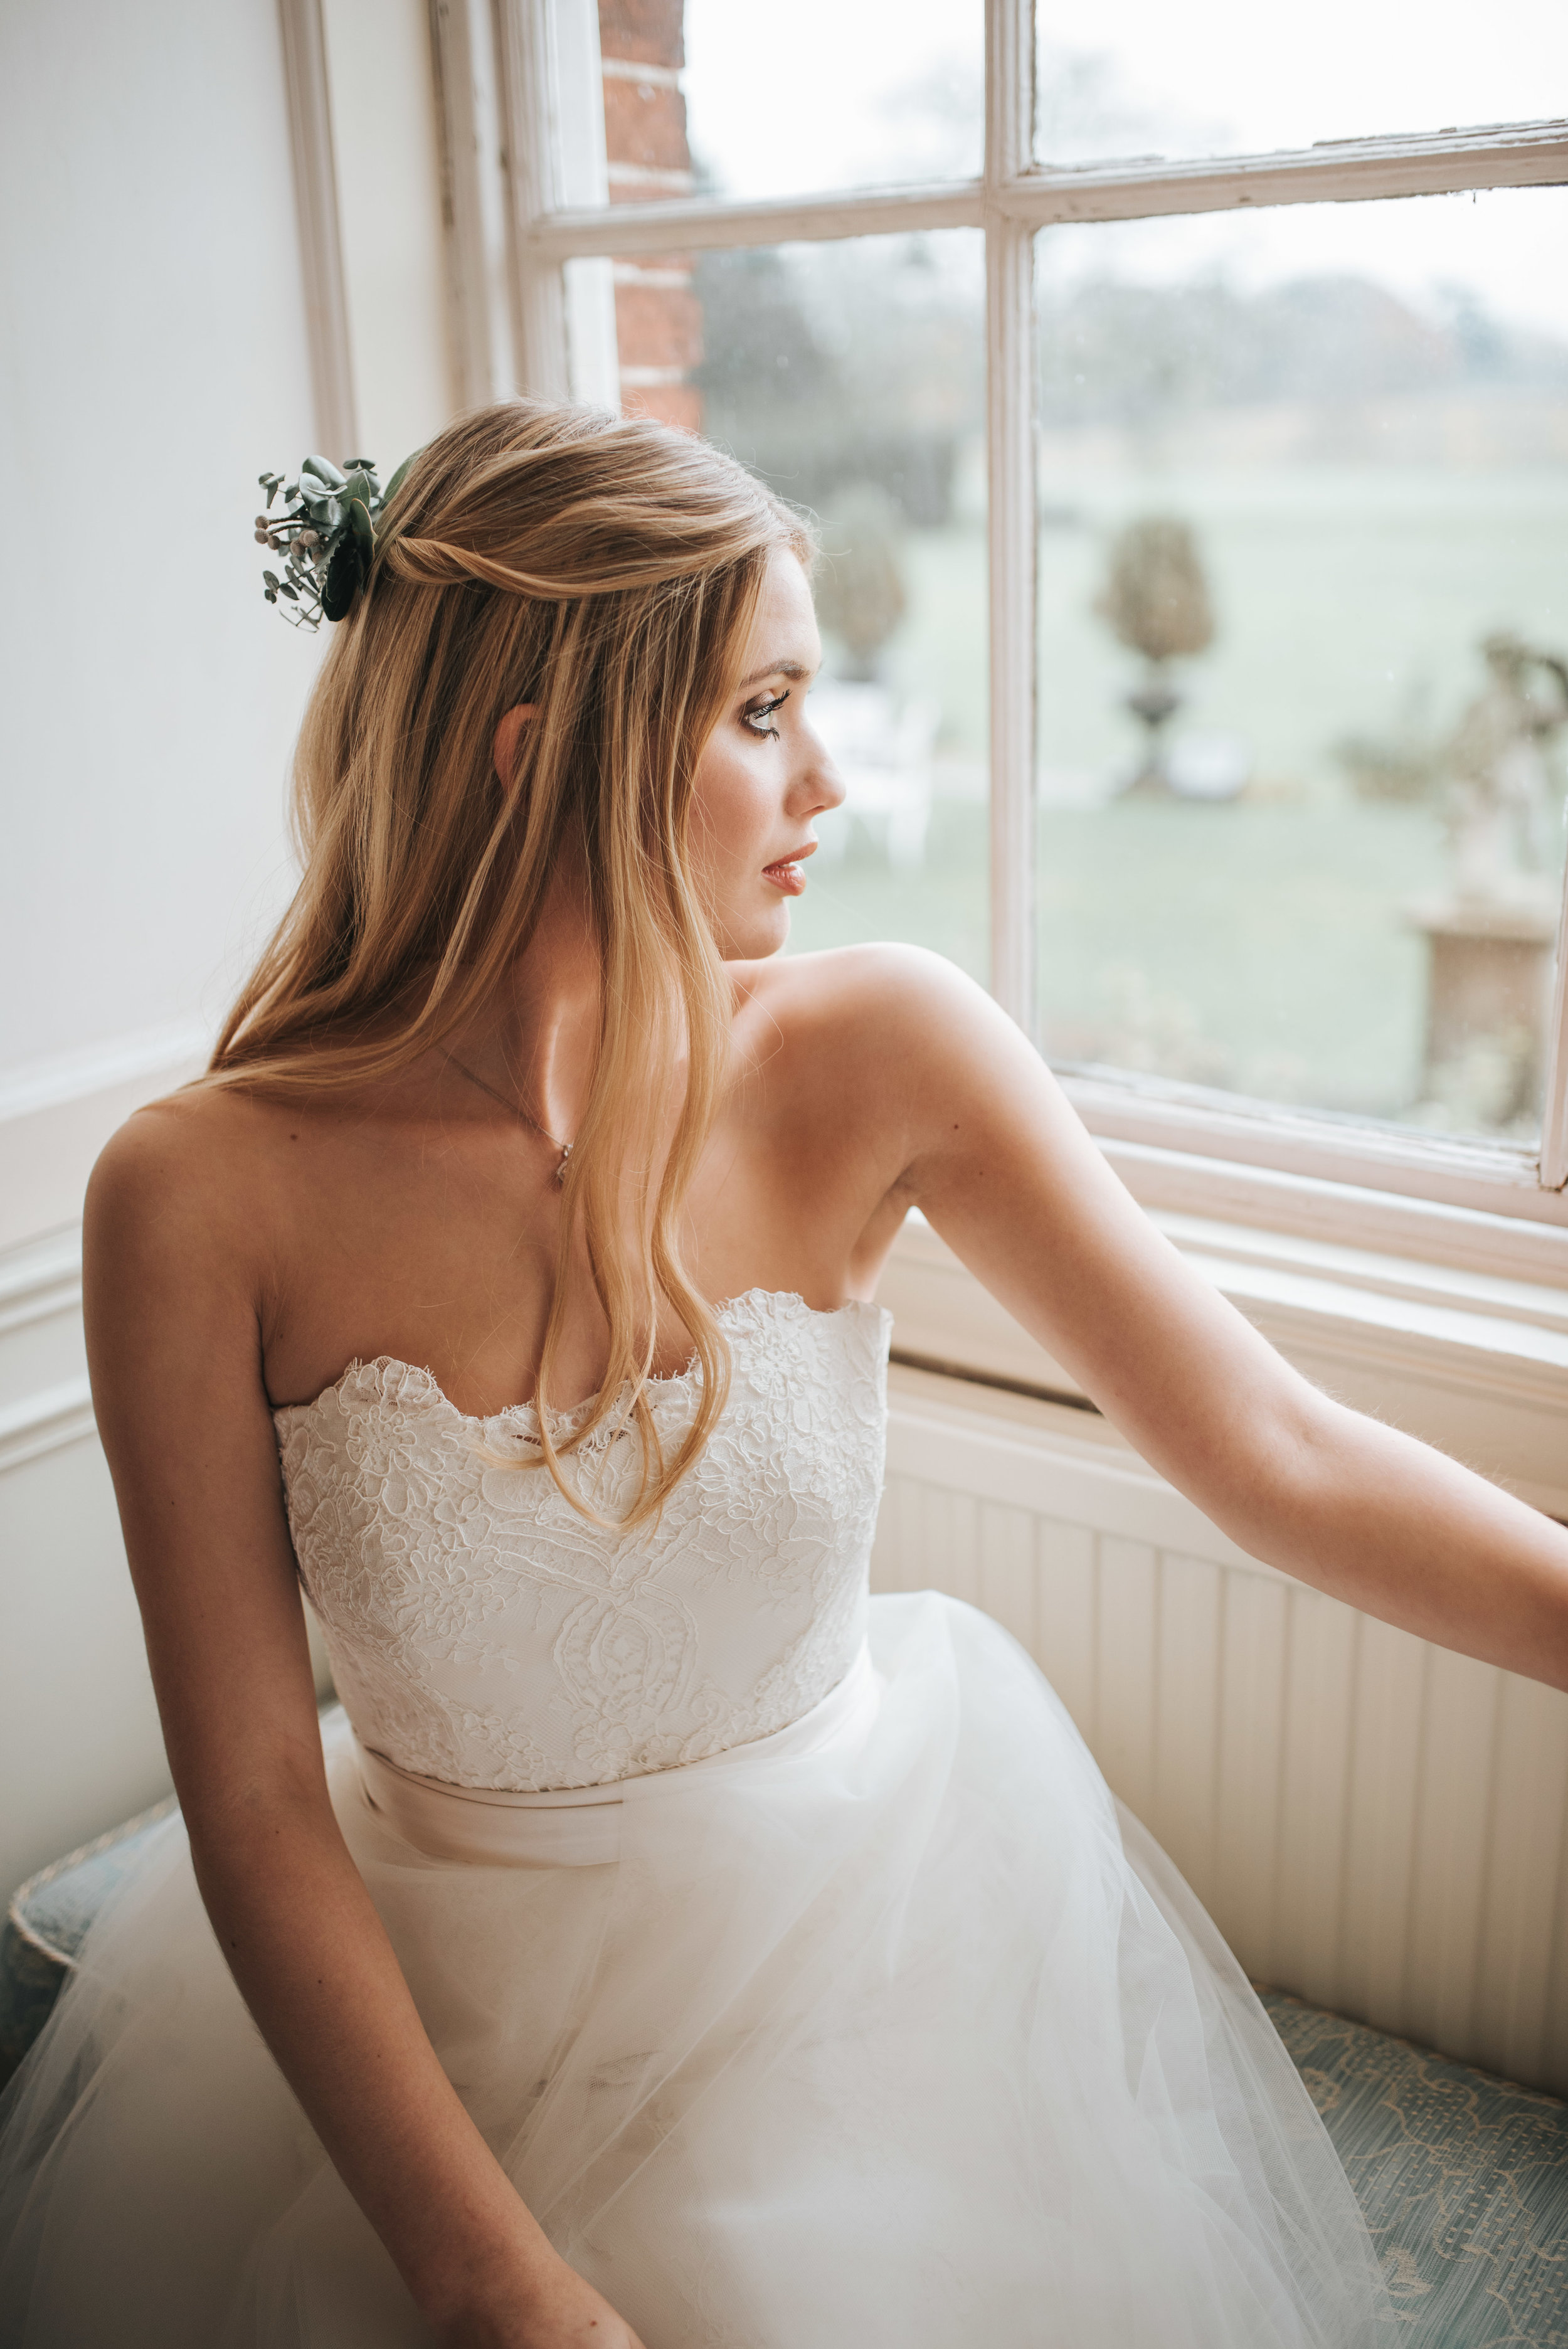 looking out of the window onto the lawns in white bridal gown.jpg